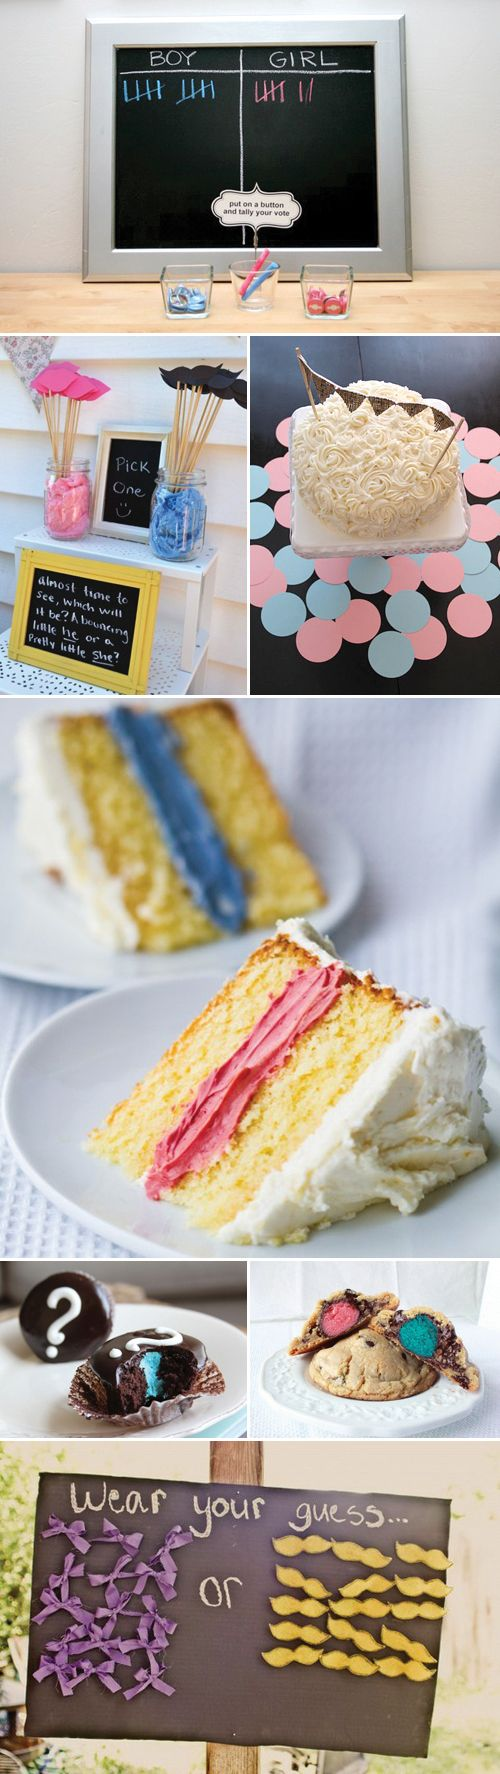 Fun ideas for a gender reveal baby shower!